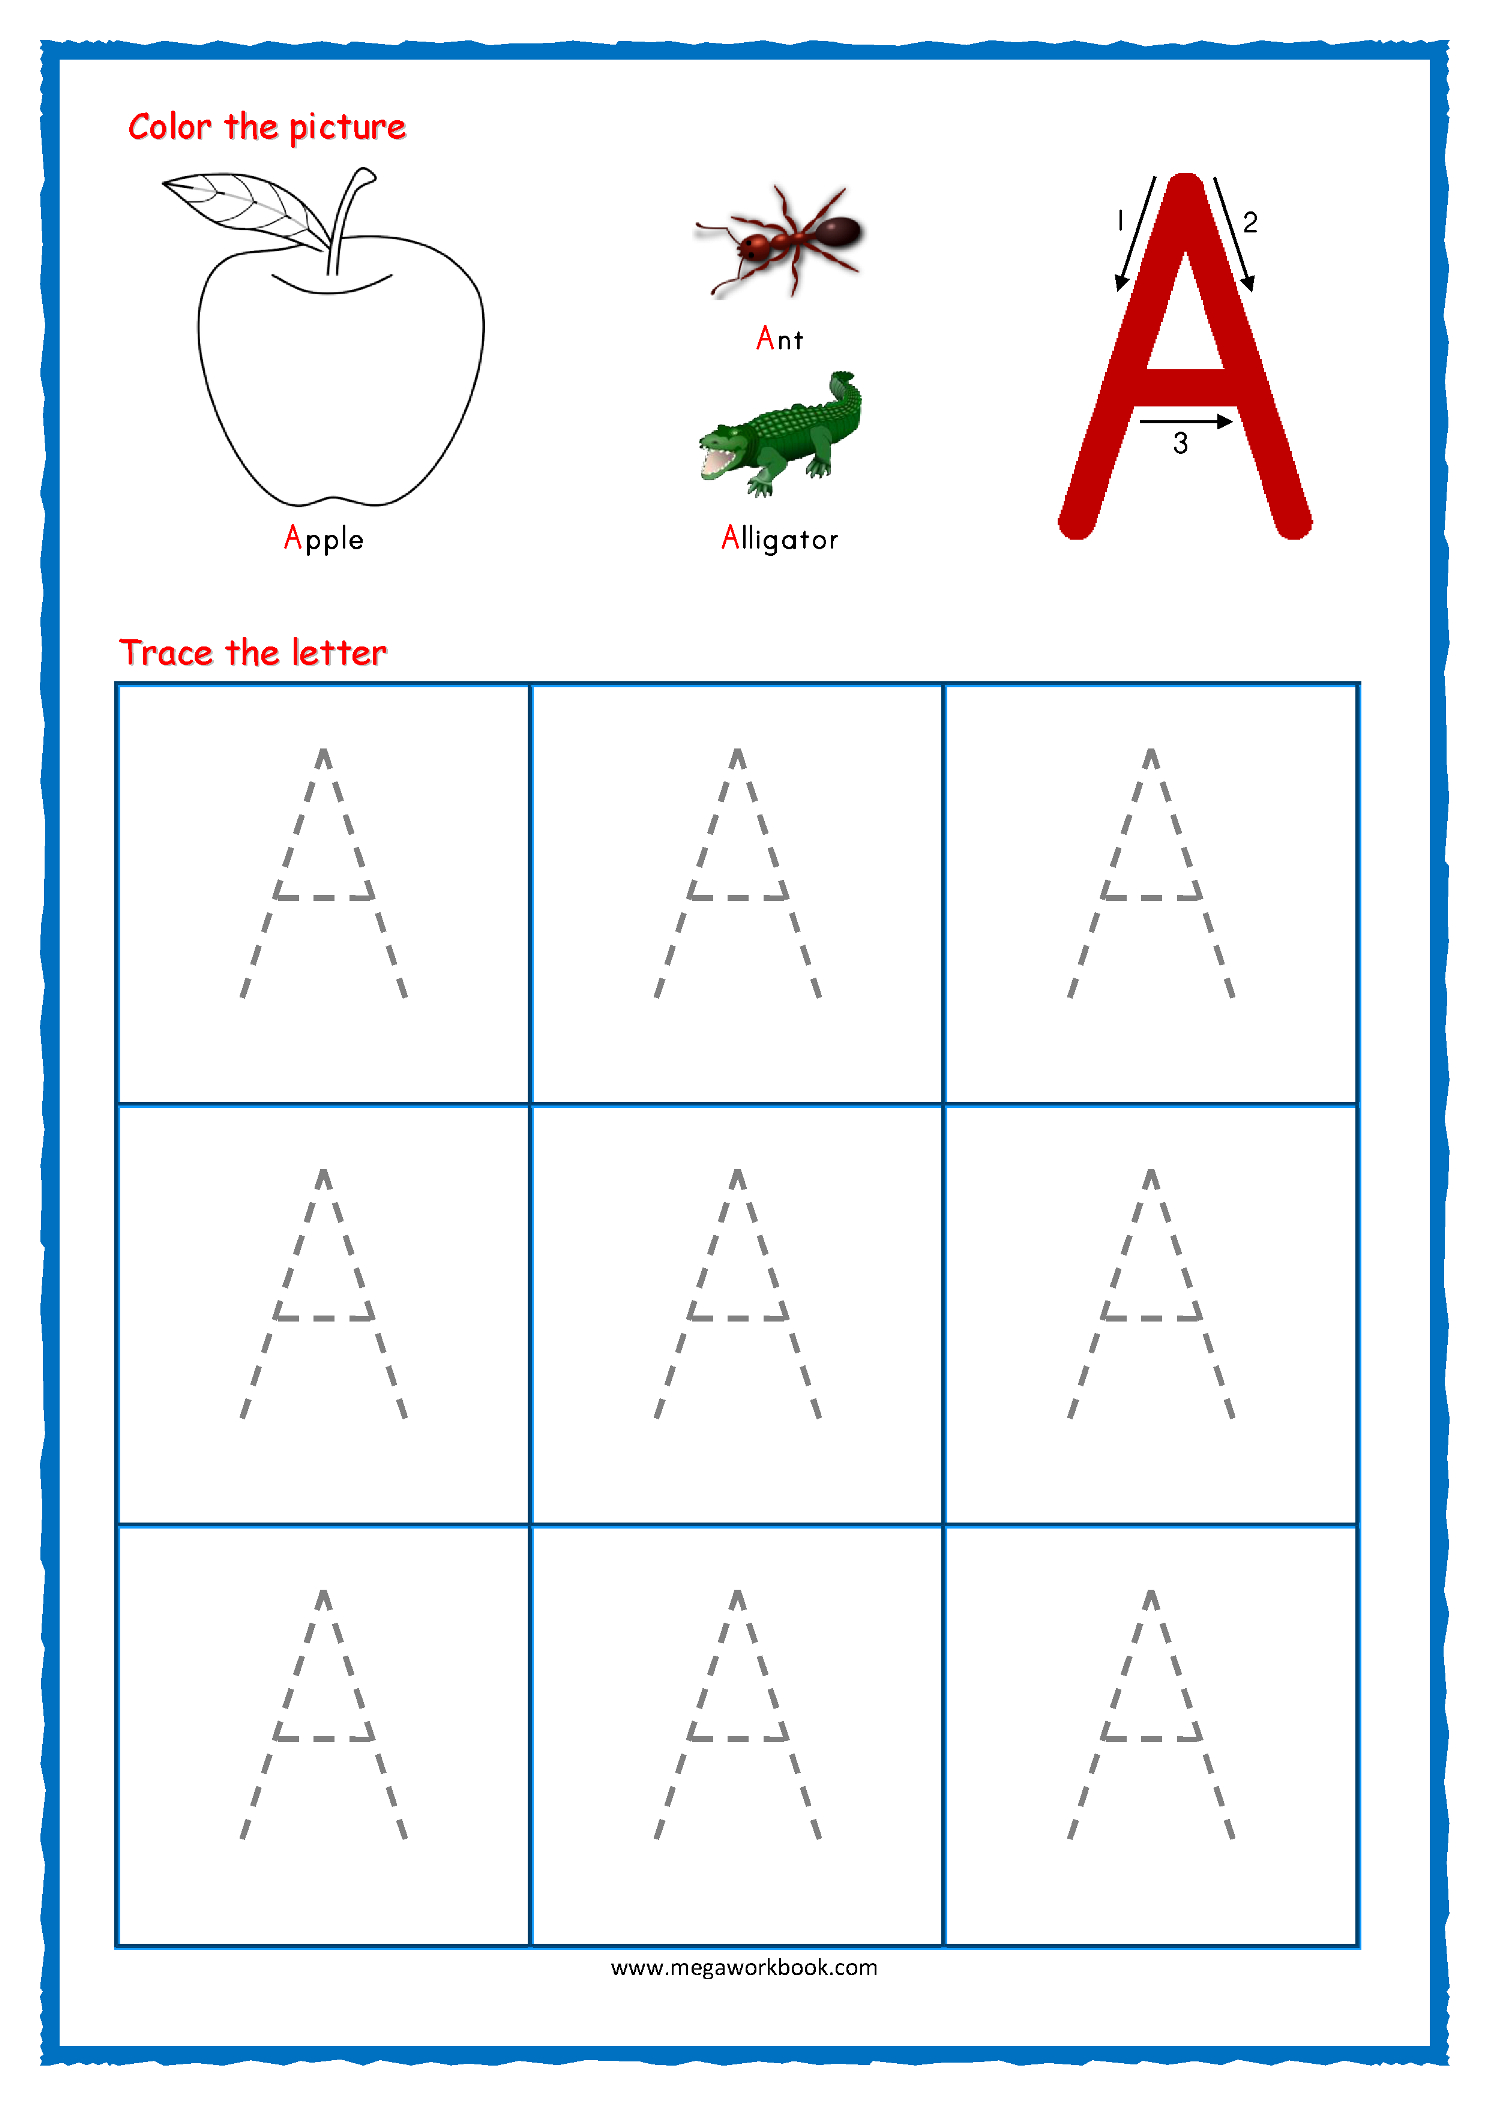 Tracing Letters - Alphabet Tracing - Capital Letters intended for Pre K Alphabet Tracing